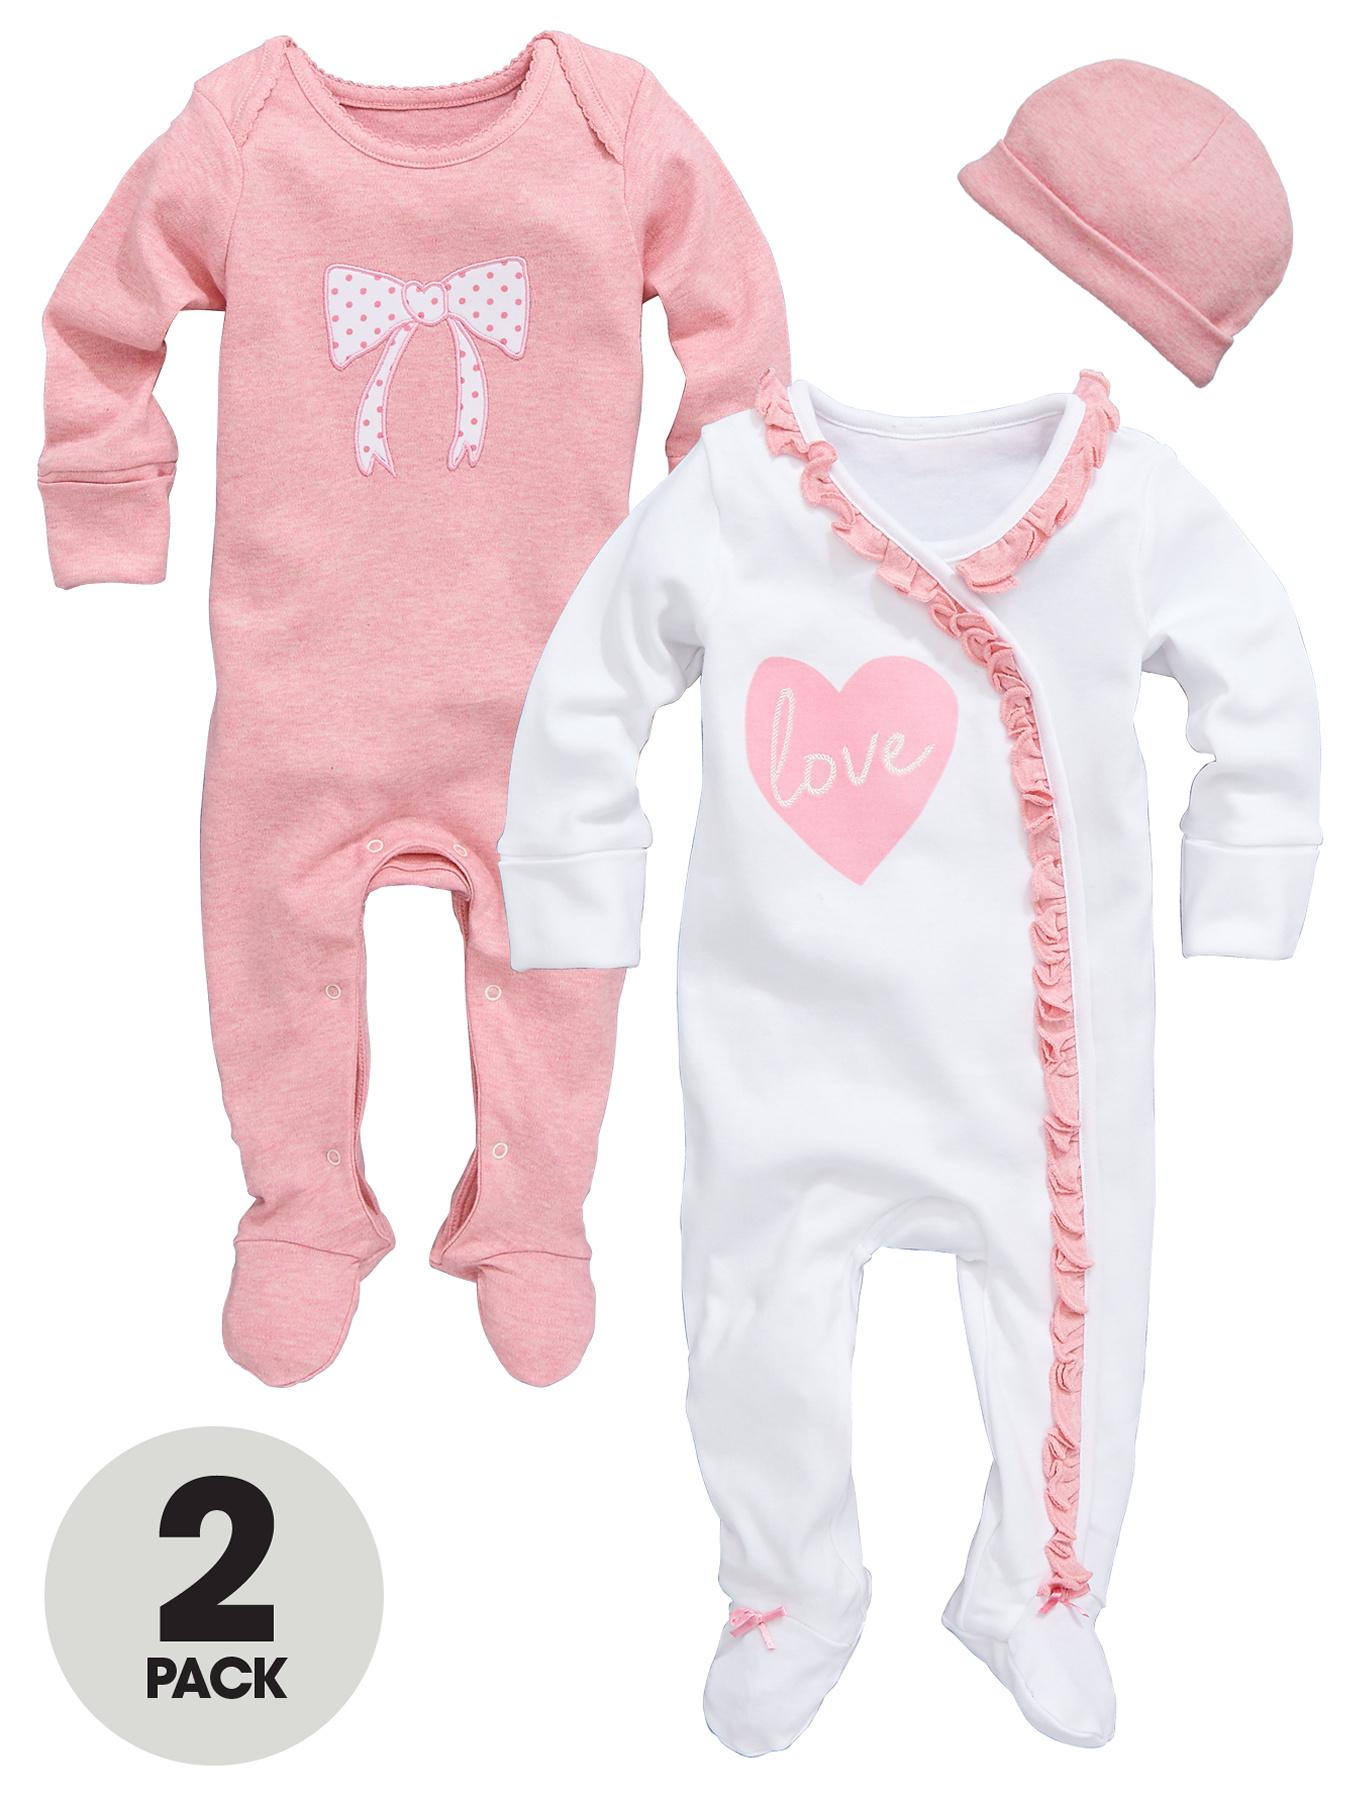 Ladybird Baby Girls Love Heart Sleepsuits with Hat (2 Pack) - Pink, Pink